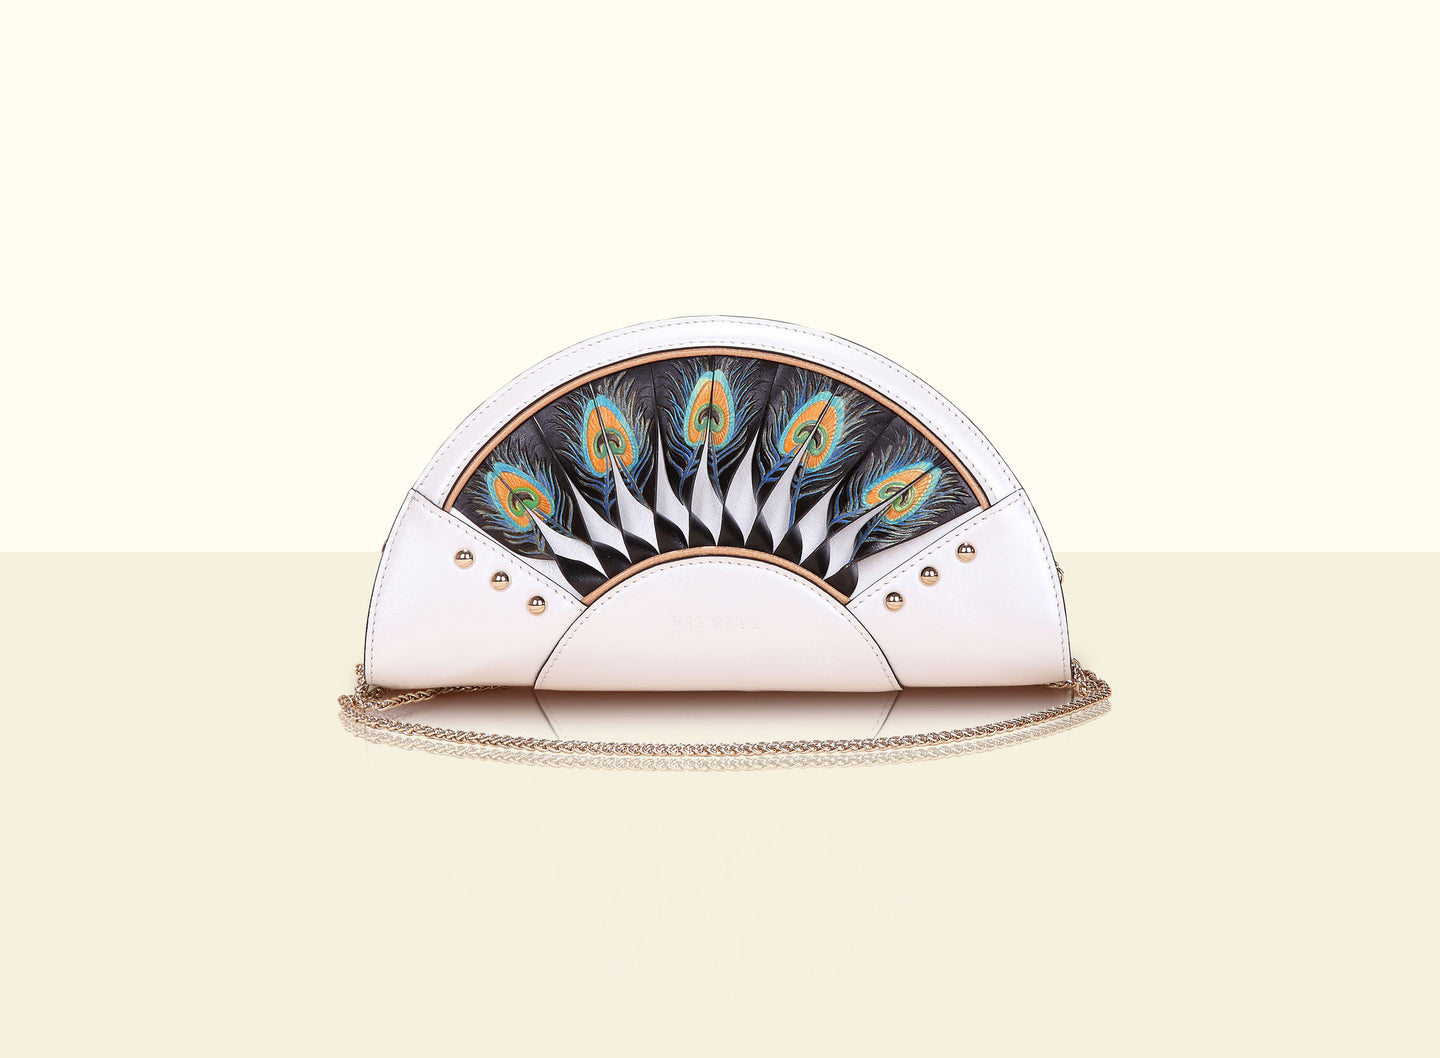 Exquisite Fan Clutch - Pearl White and Black